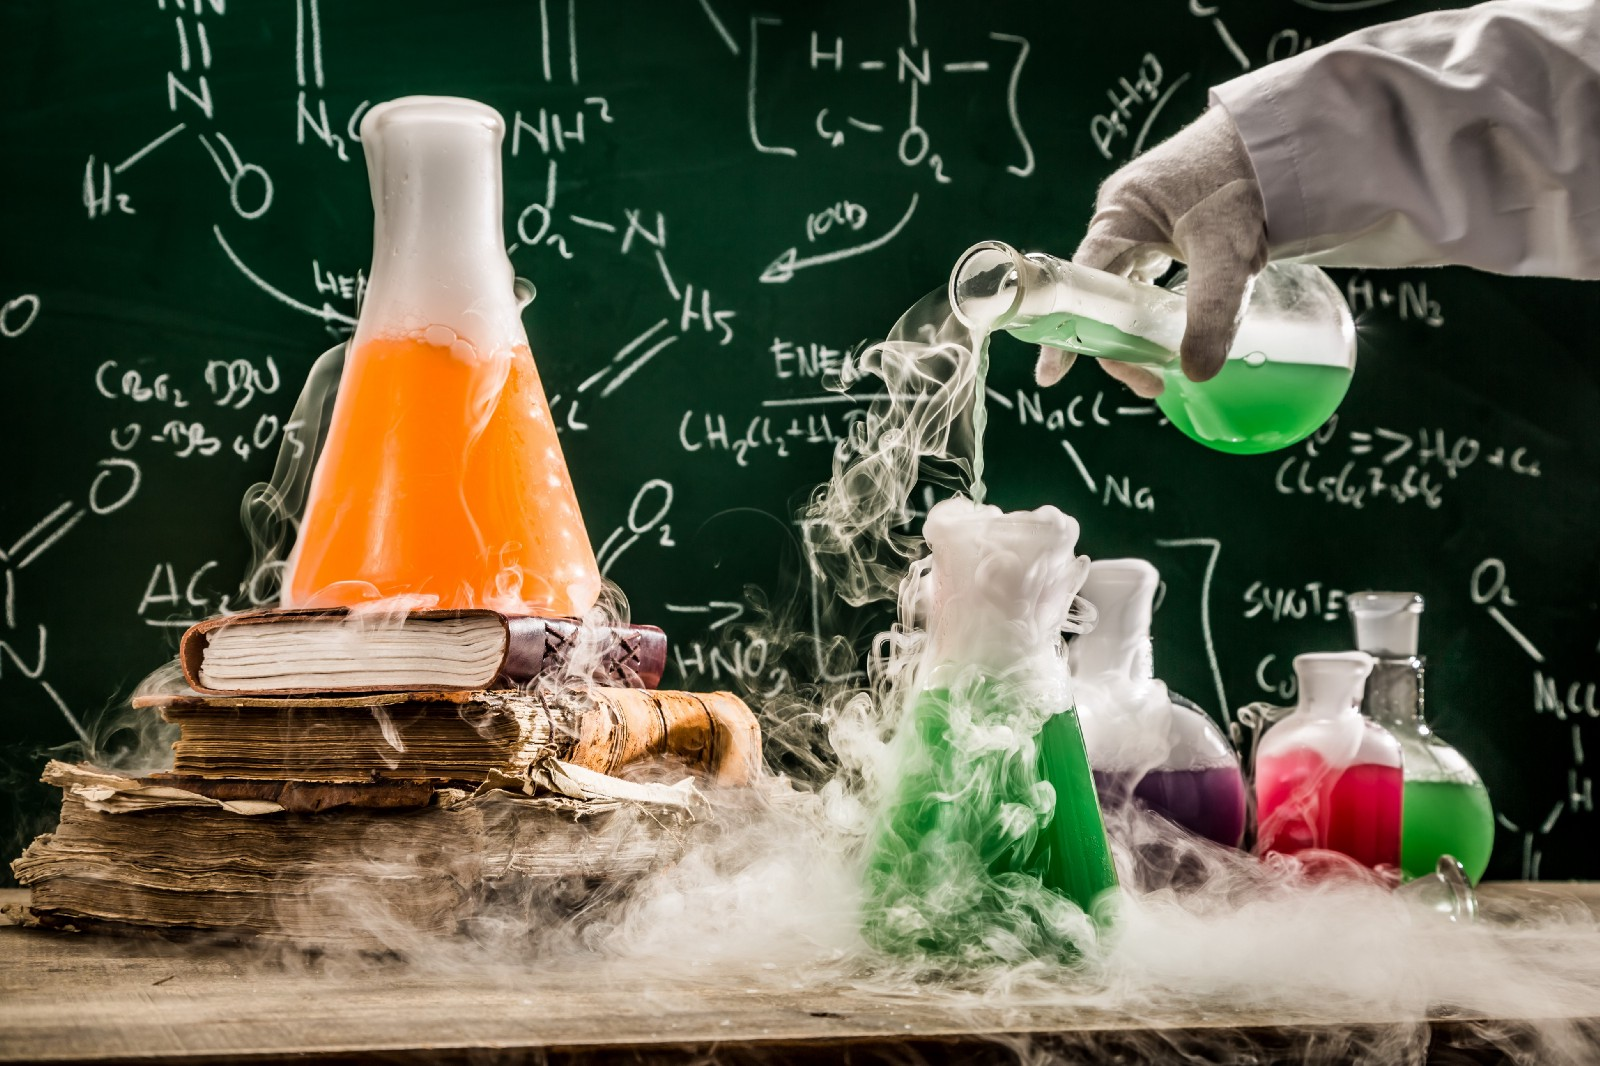 exploring the chemistry of adhesives chemistry essay Discover nc state, a leading public research university located in raleigh, north carolina we produce career-ready graduates, groundbreaking research and problem-solving partnerships we think and do.